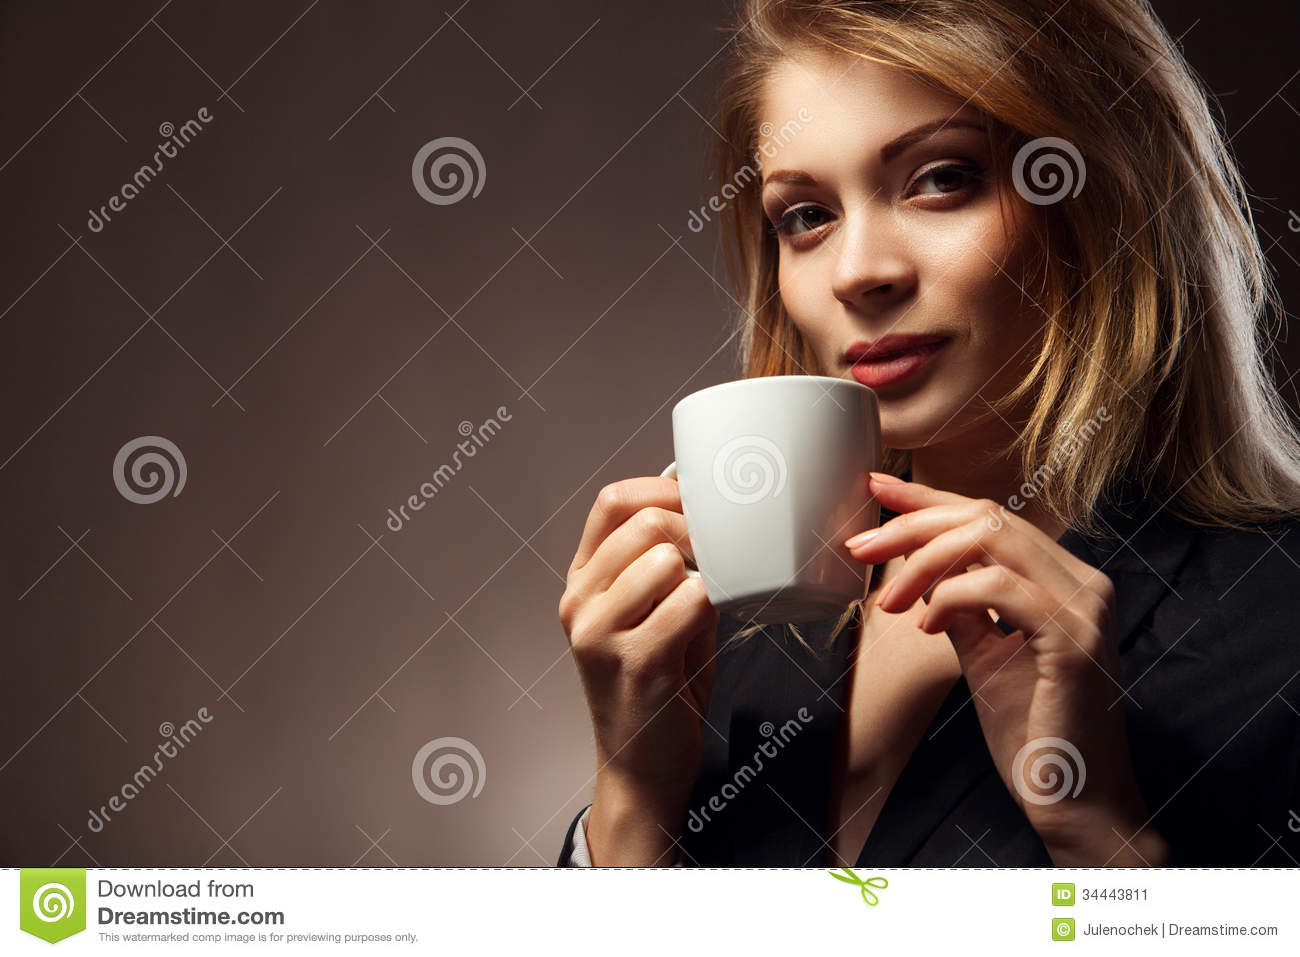 Beautiful Girl Drinking Tea or Coffee